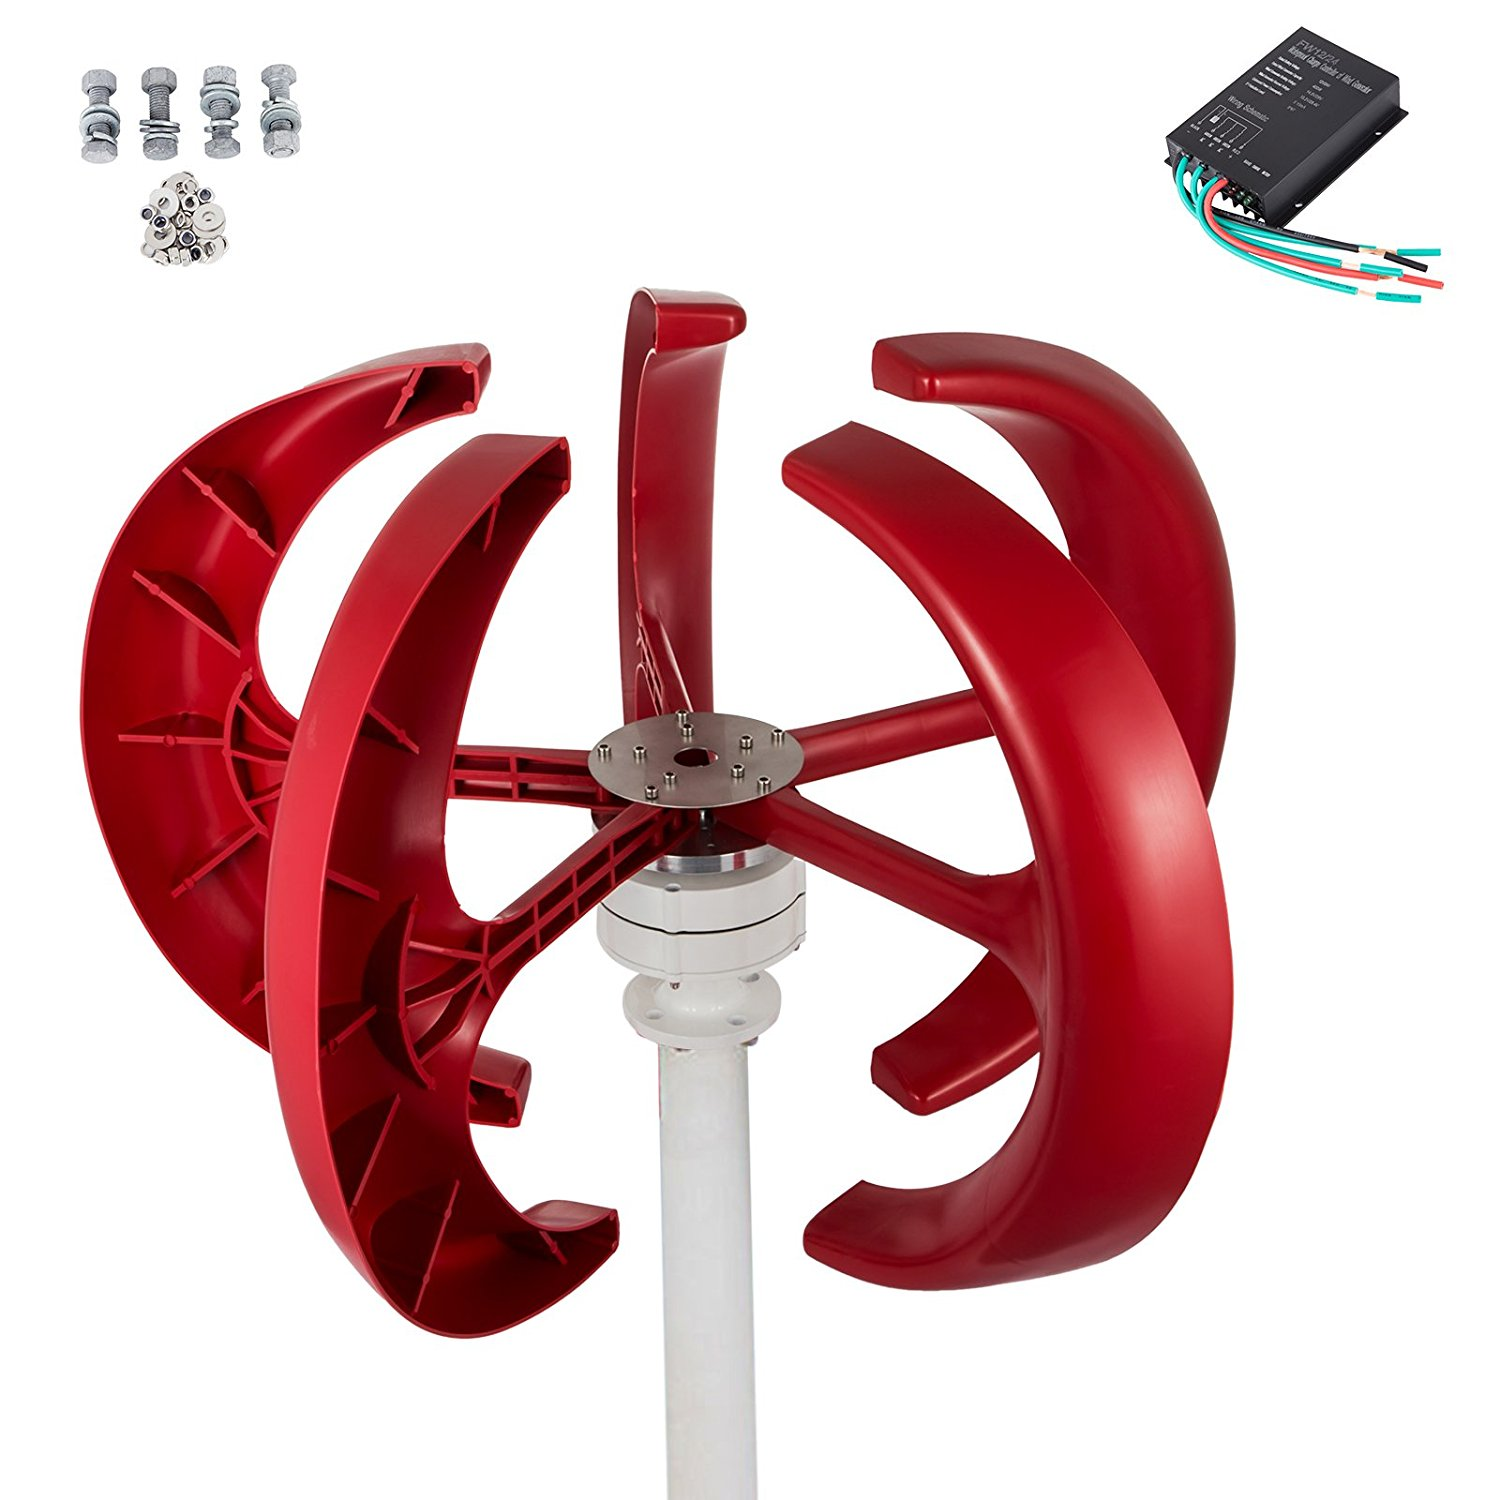 VEVOR Wind Turbine 300W 12V Wind Turbine Generator Red Lantern Vertical Wind Generator 5 Leaves Wind Turbine Kit with Controller No Pole(300W 12V)